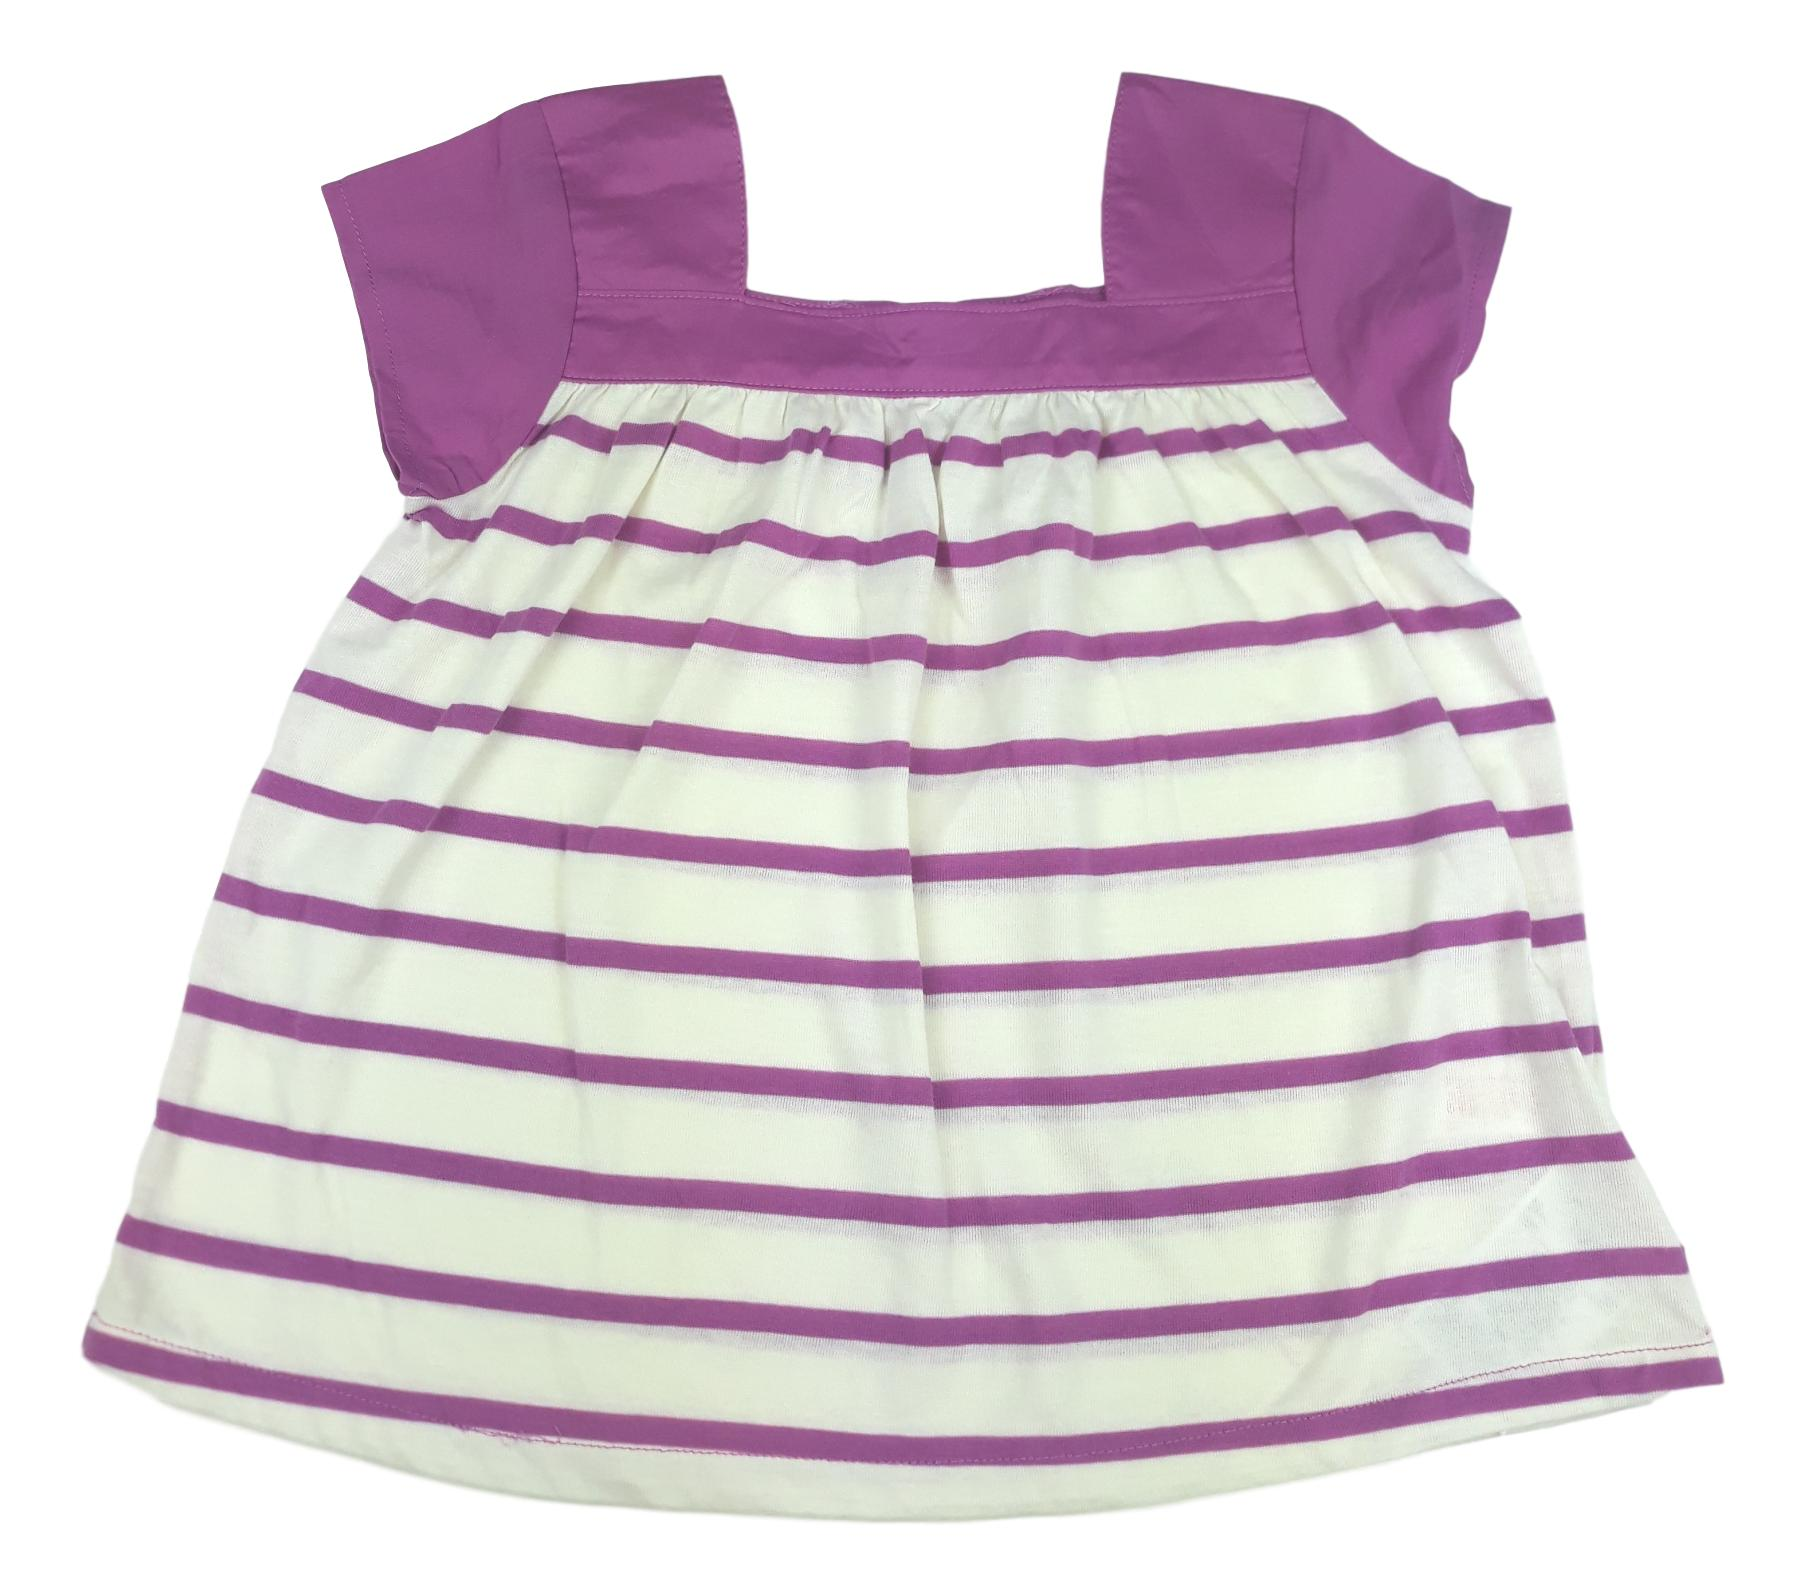 GAP - Taille 5 ans